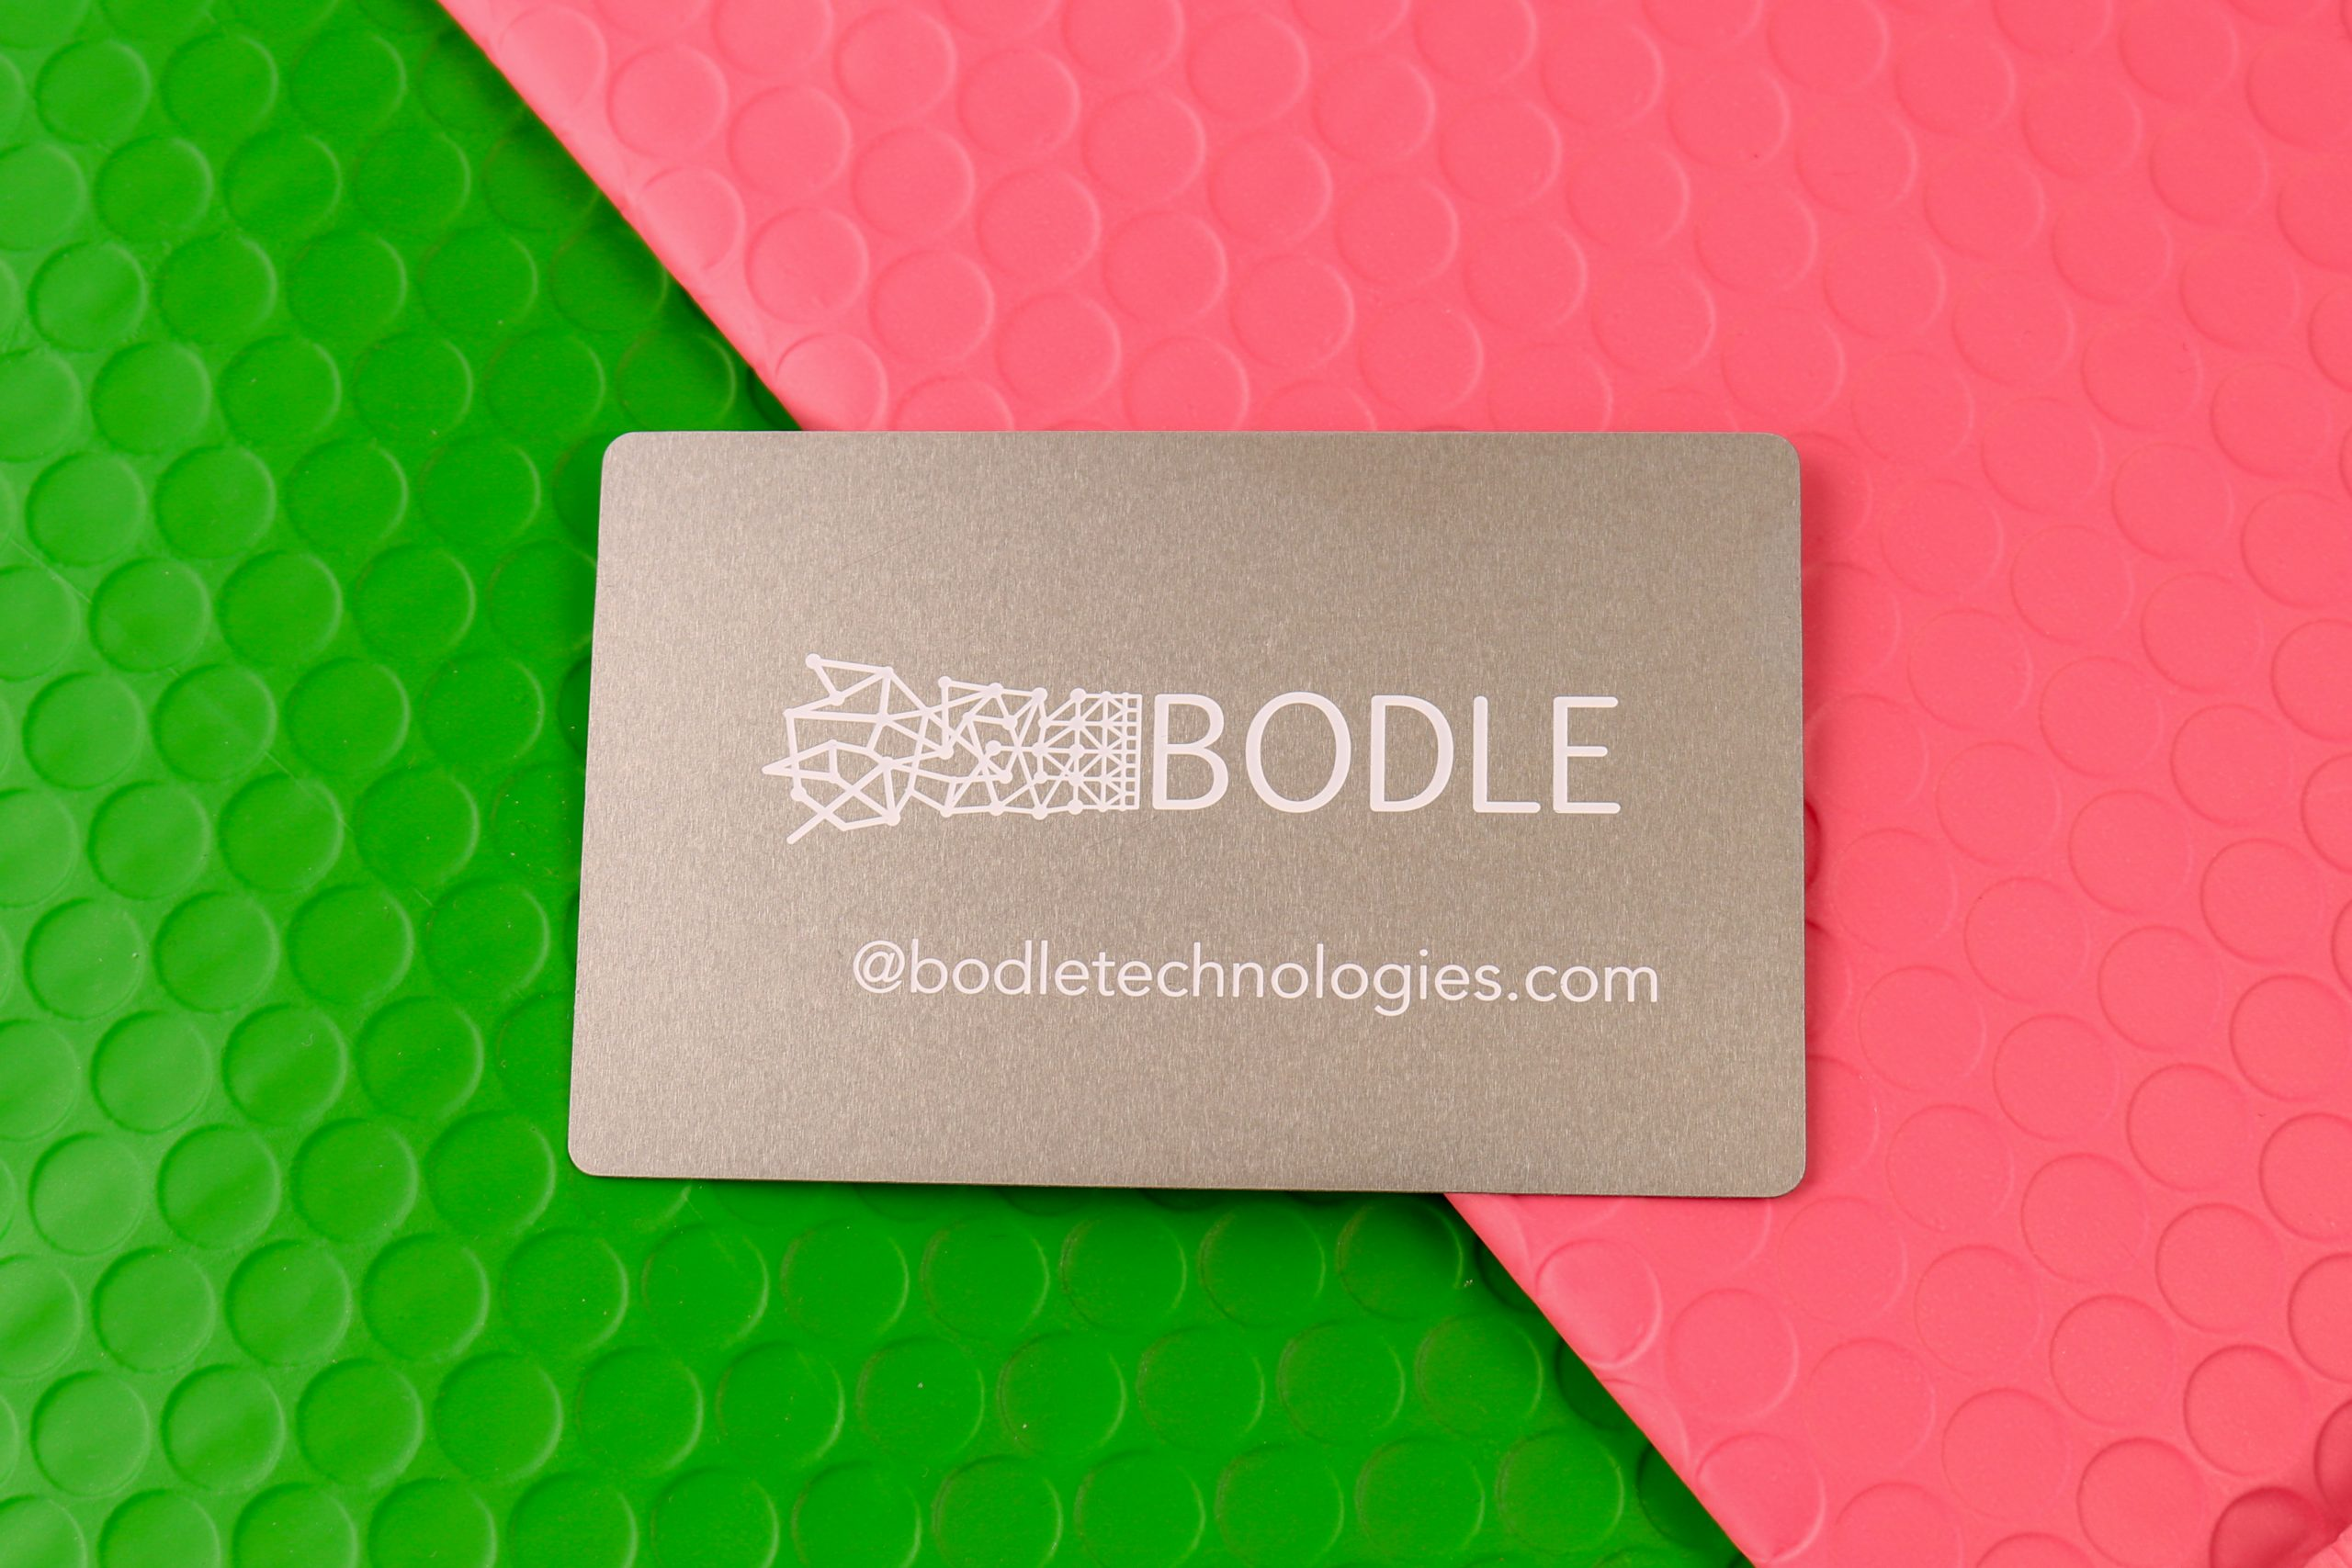 Bodle Technologies - Metal Business Cards